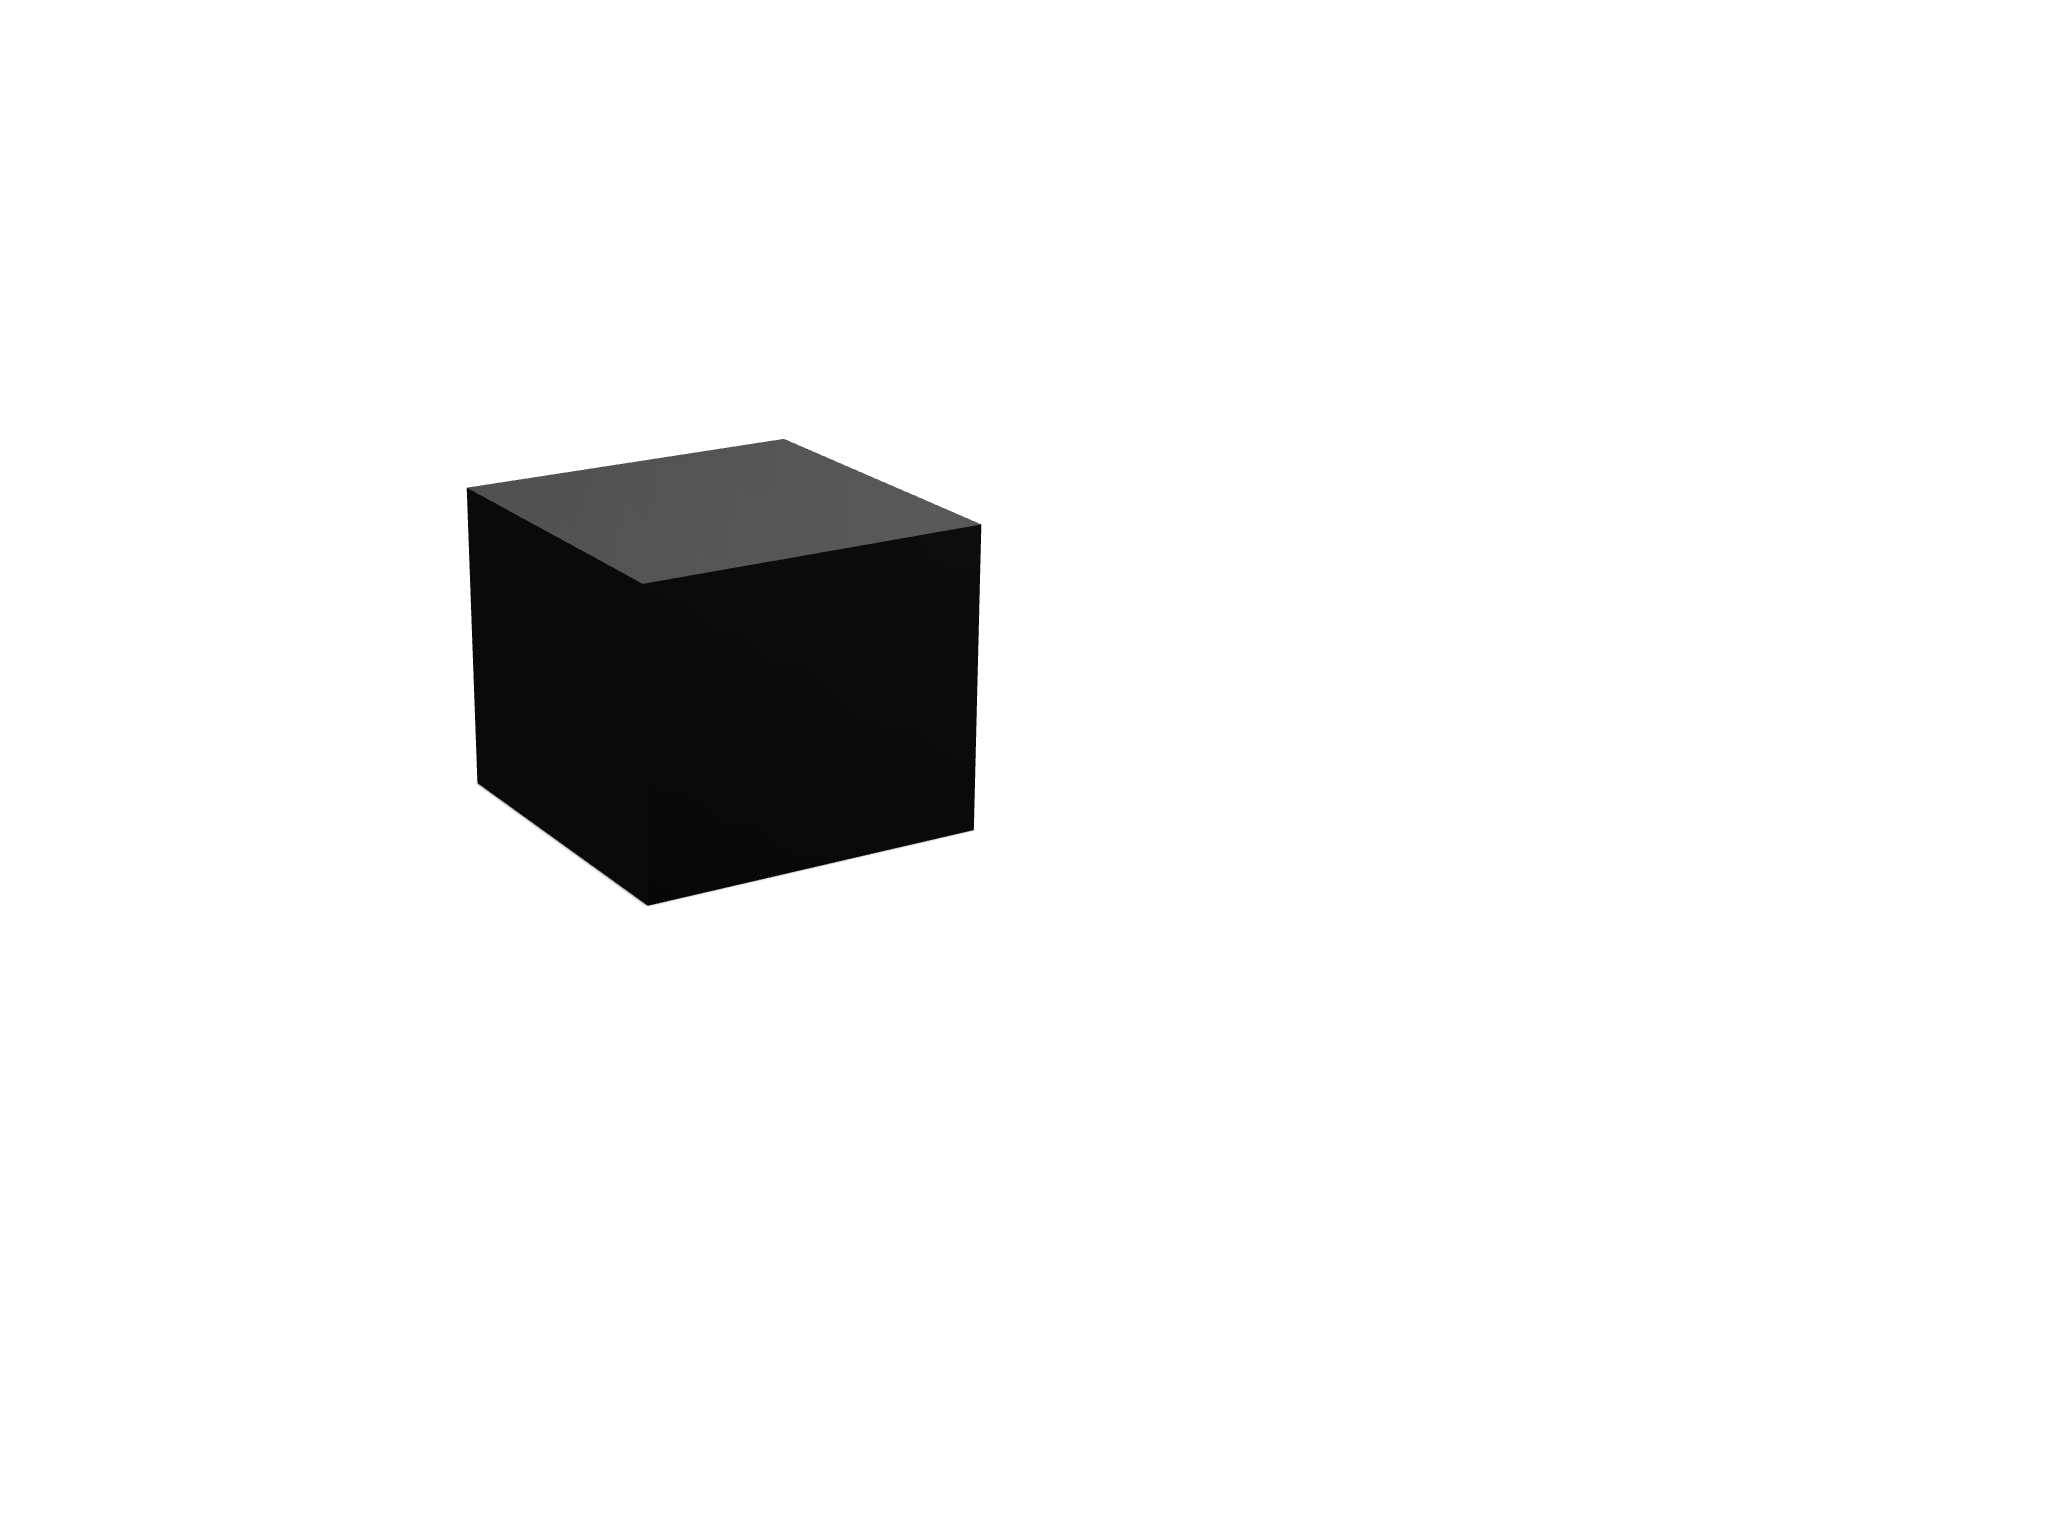 the box - 3D design by the awesome one Nov 24, 2017